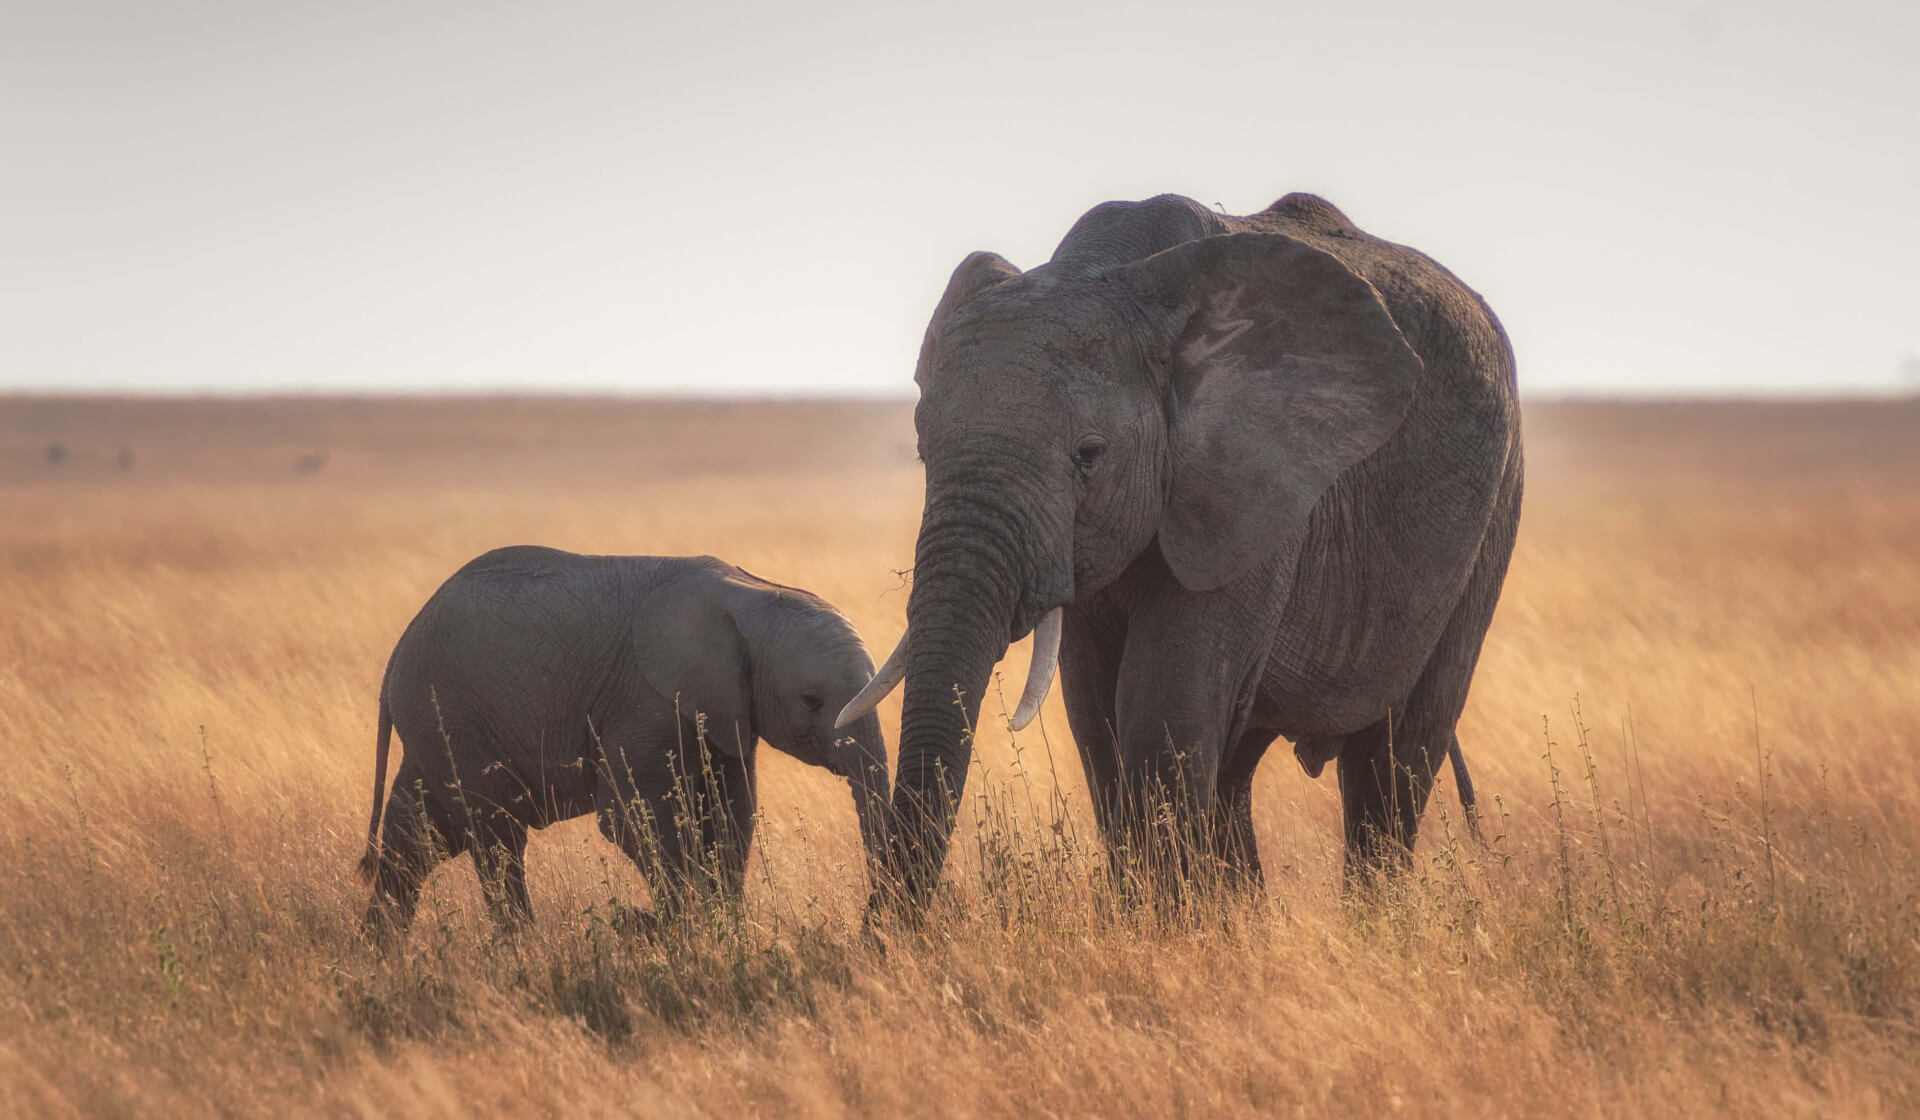 A mother and baby elephant in the grassland plains of Tanzania